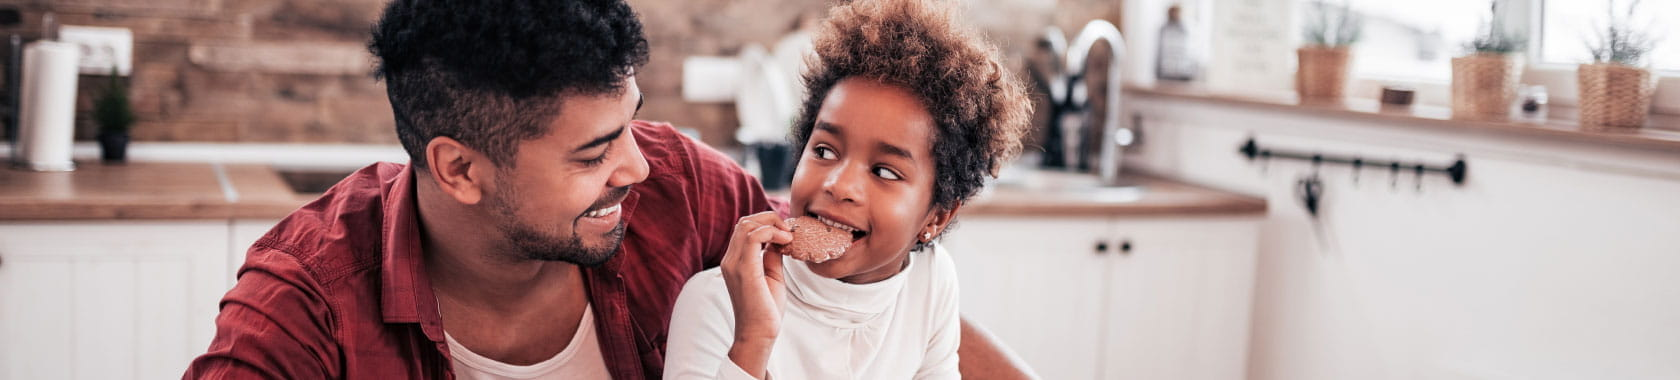 Father and child eating a cookie